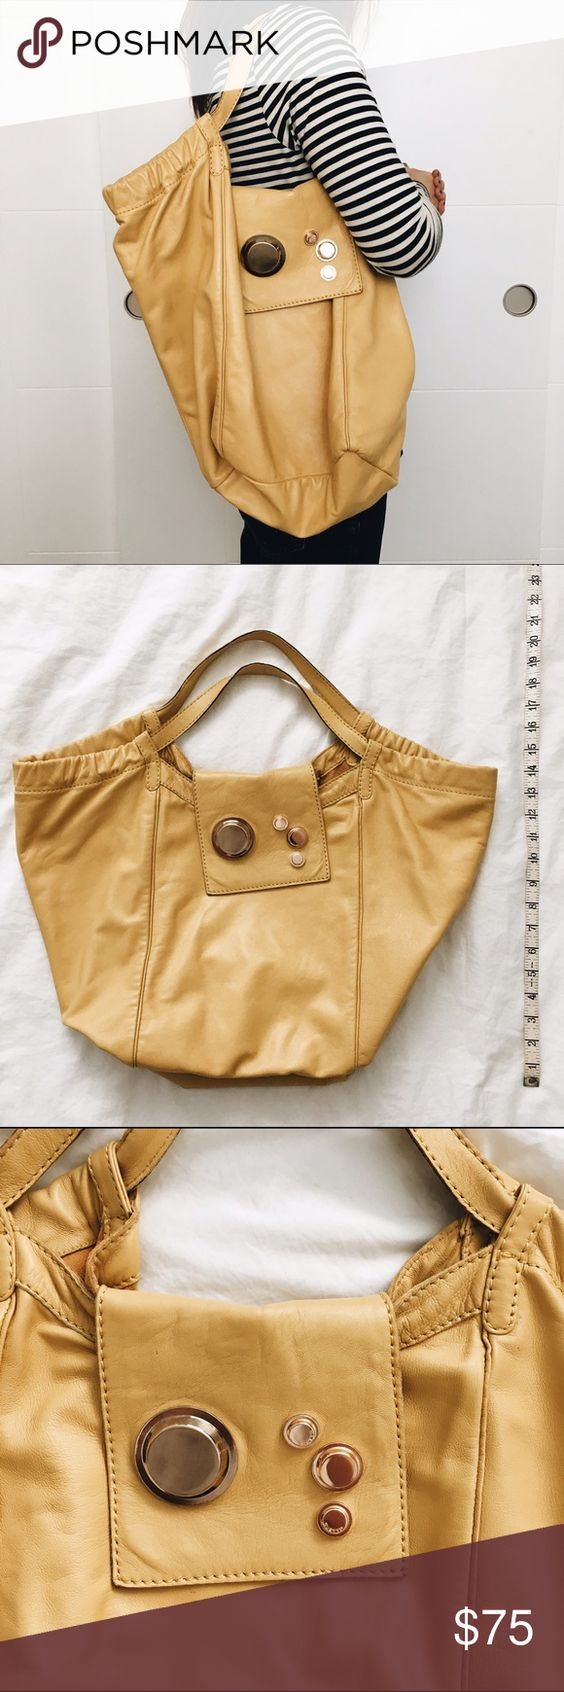 f9d442ce8a2b authentic Gustto yellow shoulder bag. All photos of the listing are taken  by me